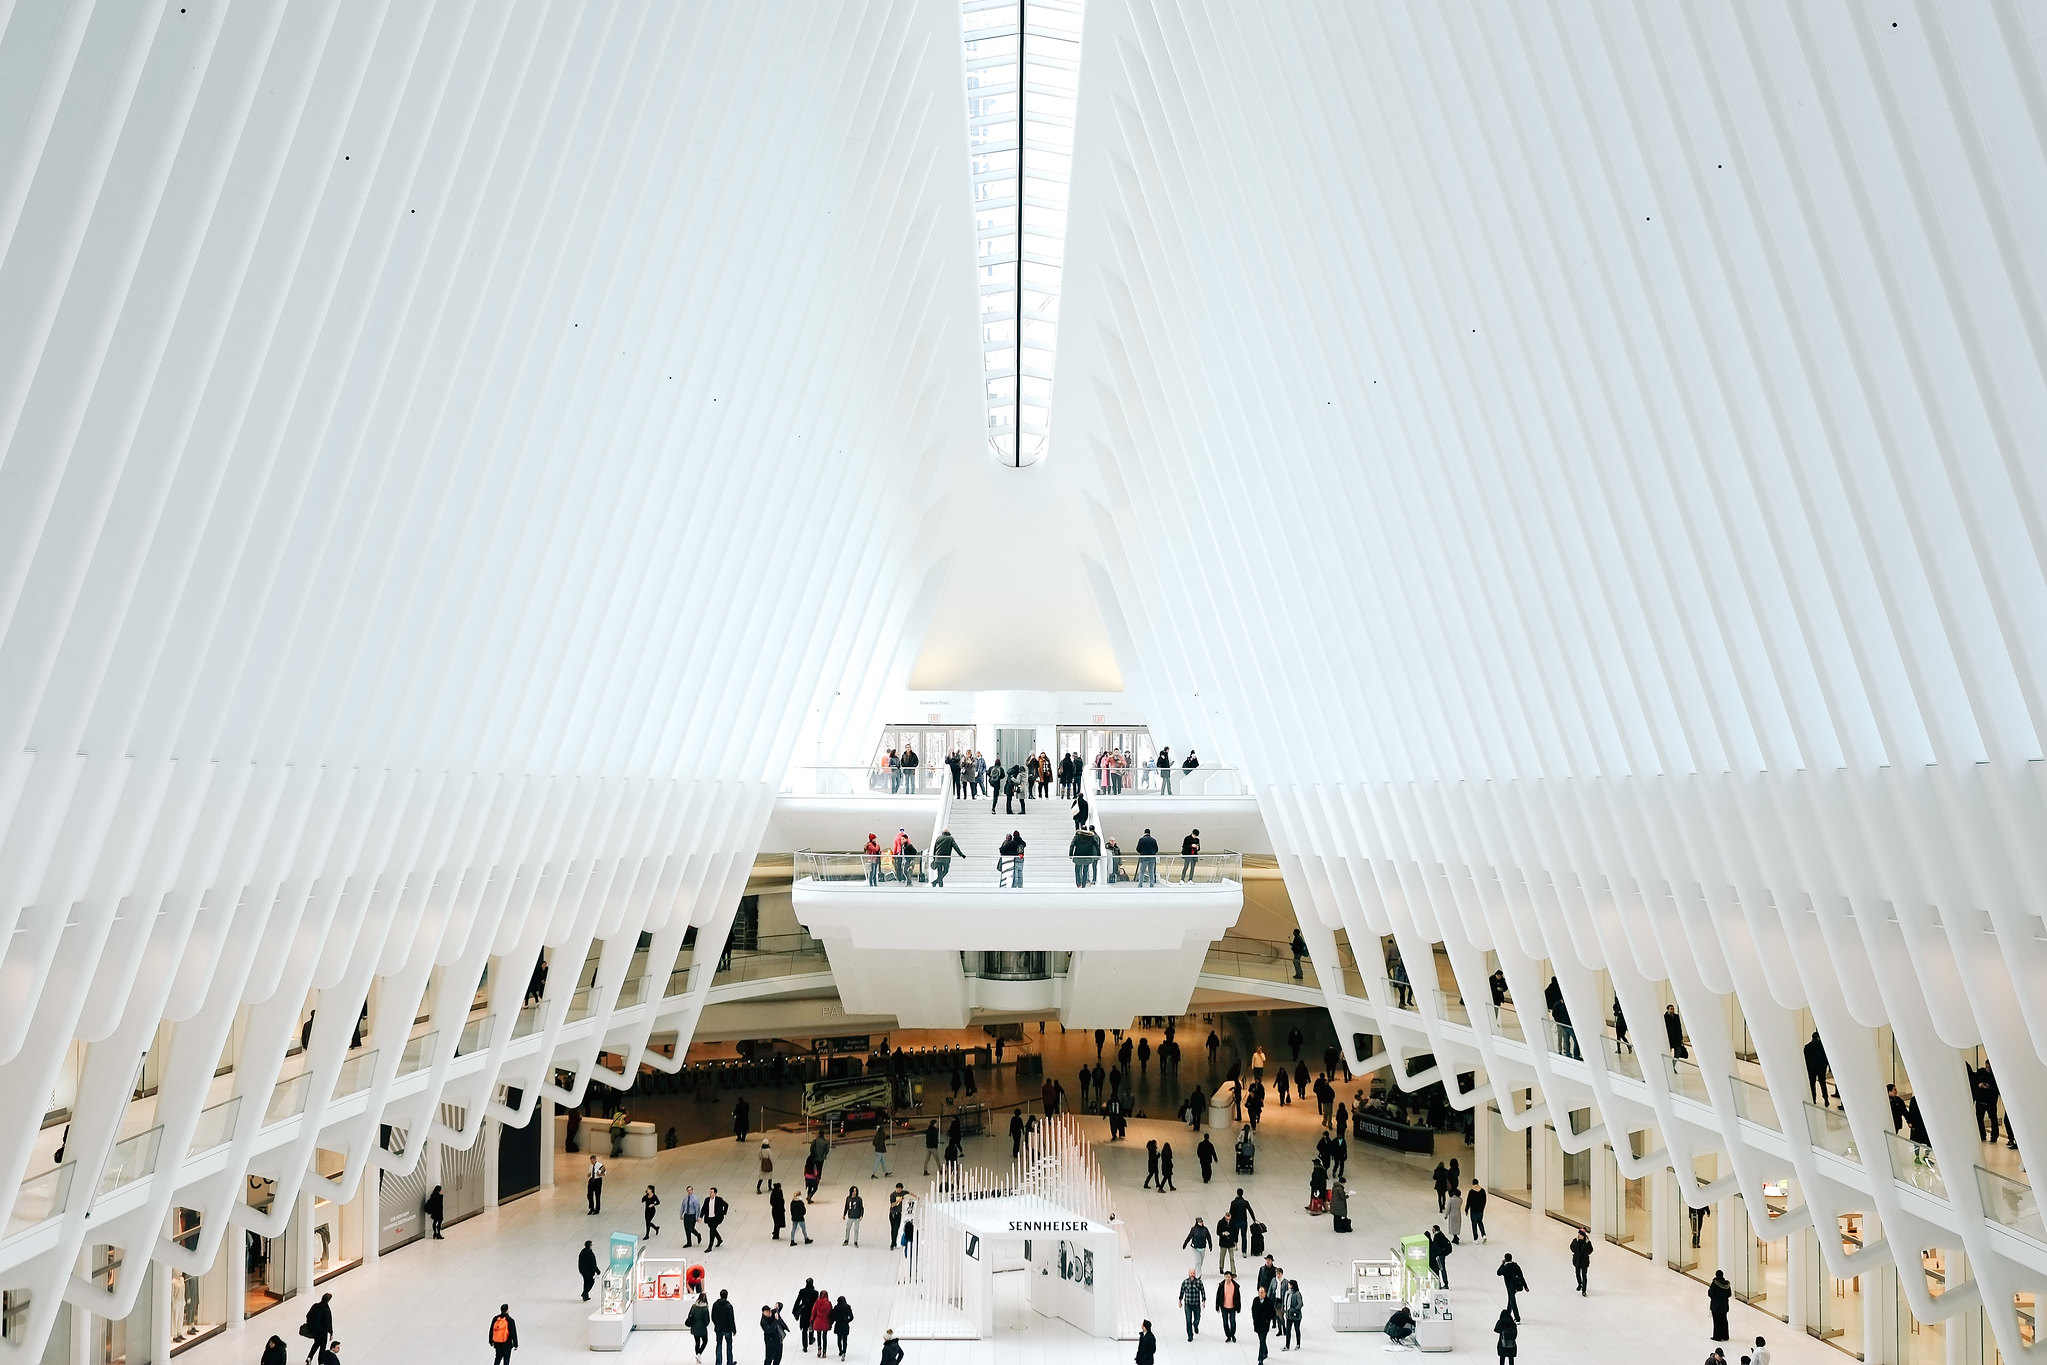 The Oculus at the World Trade Center